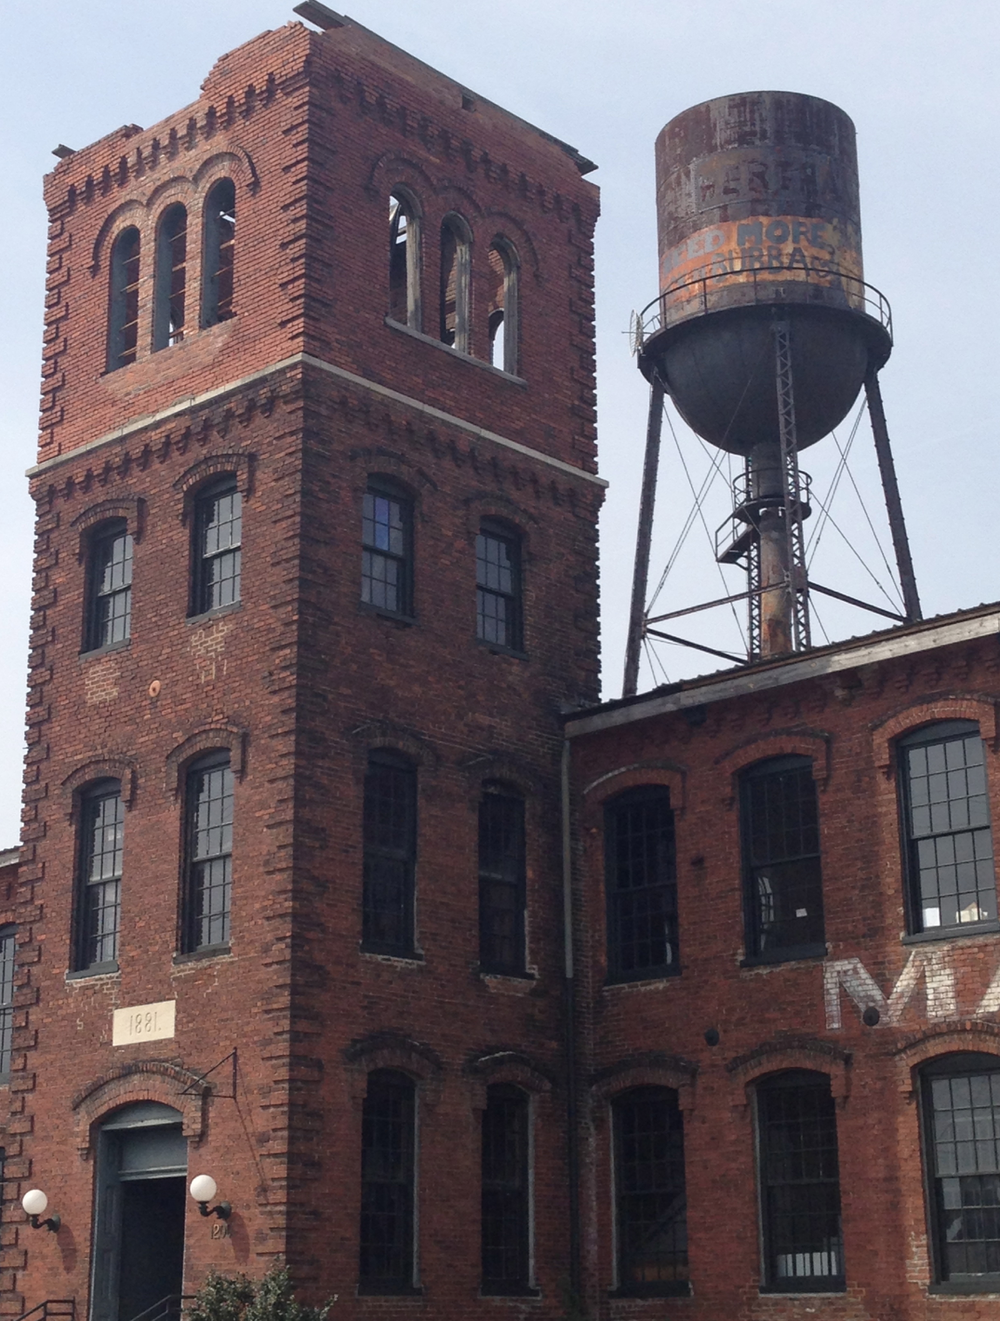 Marathon Motorworks. Built 1881. Now home to loads of studios and offices for Nashville's creative class. Home to Otis James, Emil Erwin, and I+W HQ.